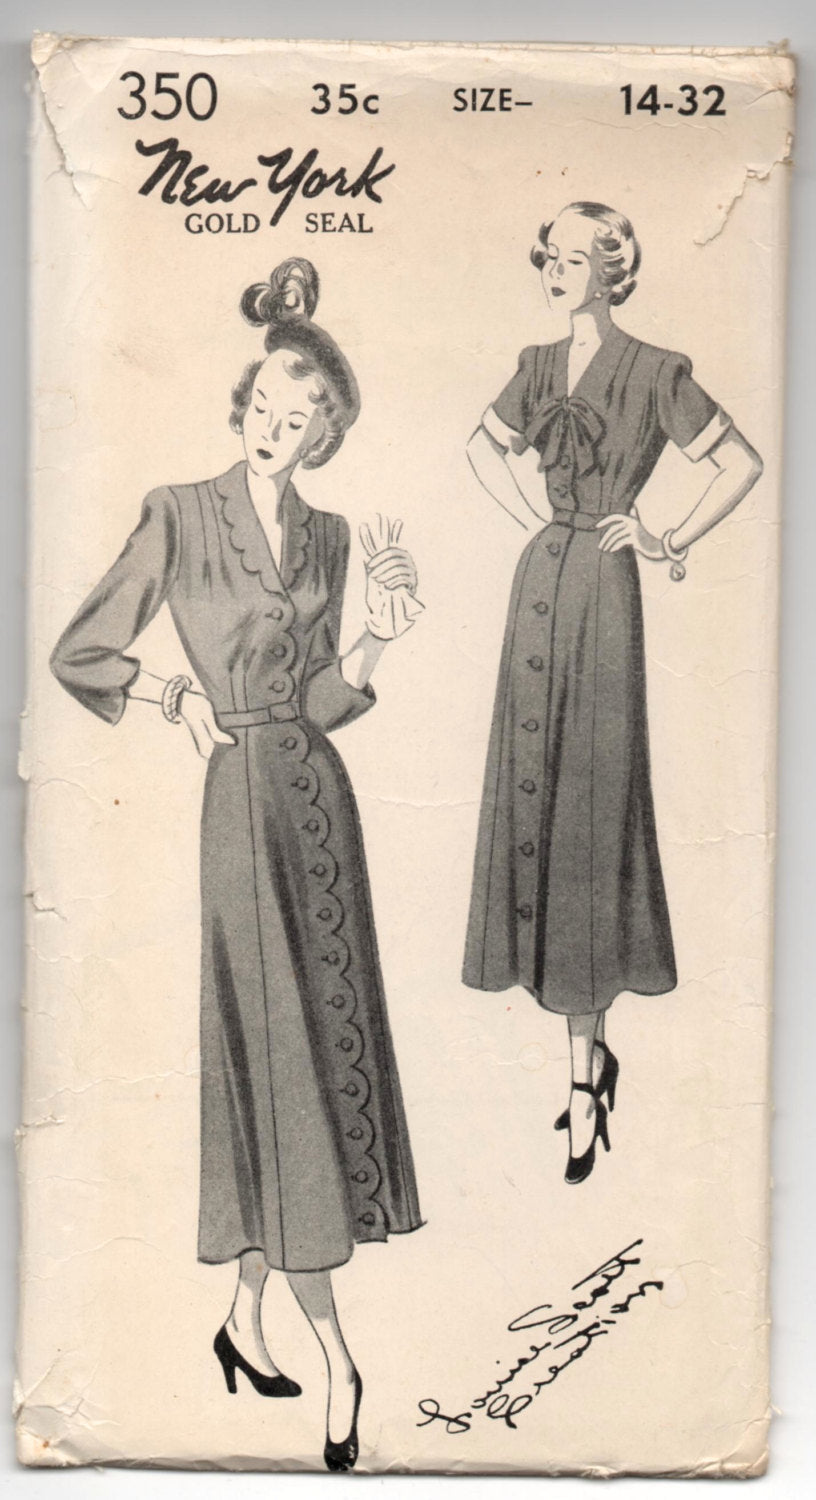 1950's One-Piece Dress with Scalloped Edges or Bow Detail by New York - Bust 32